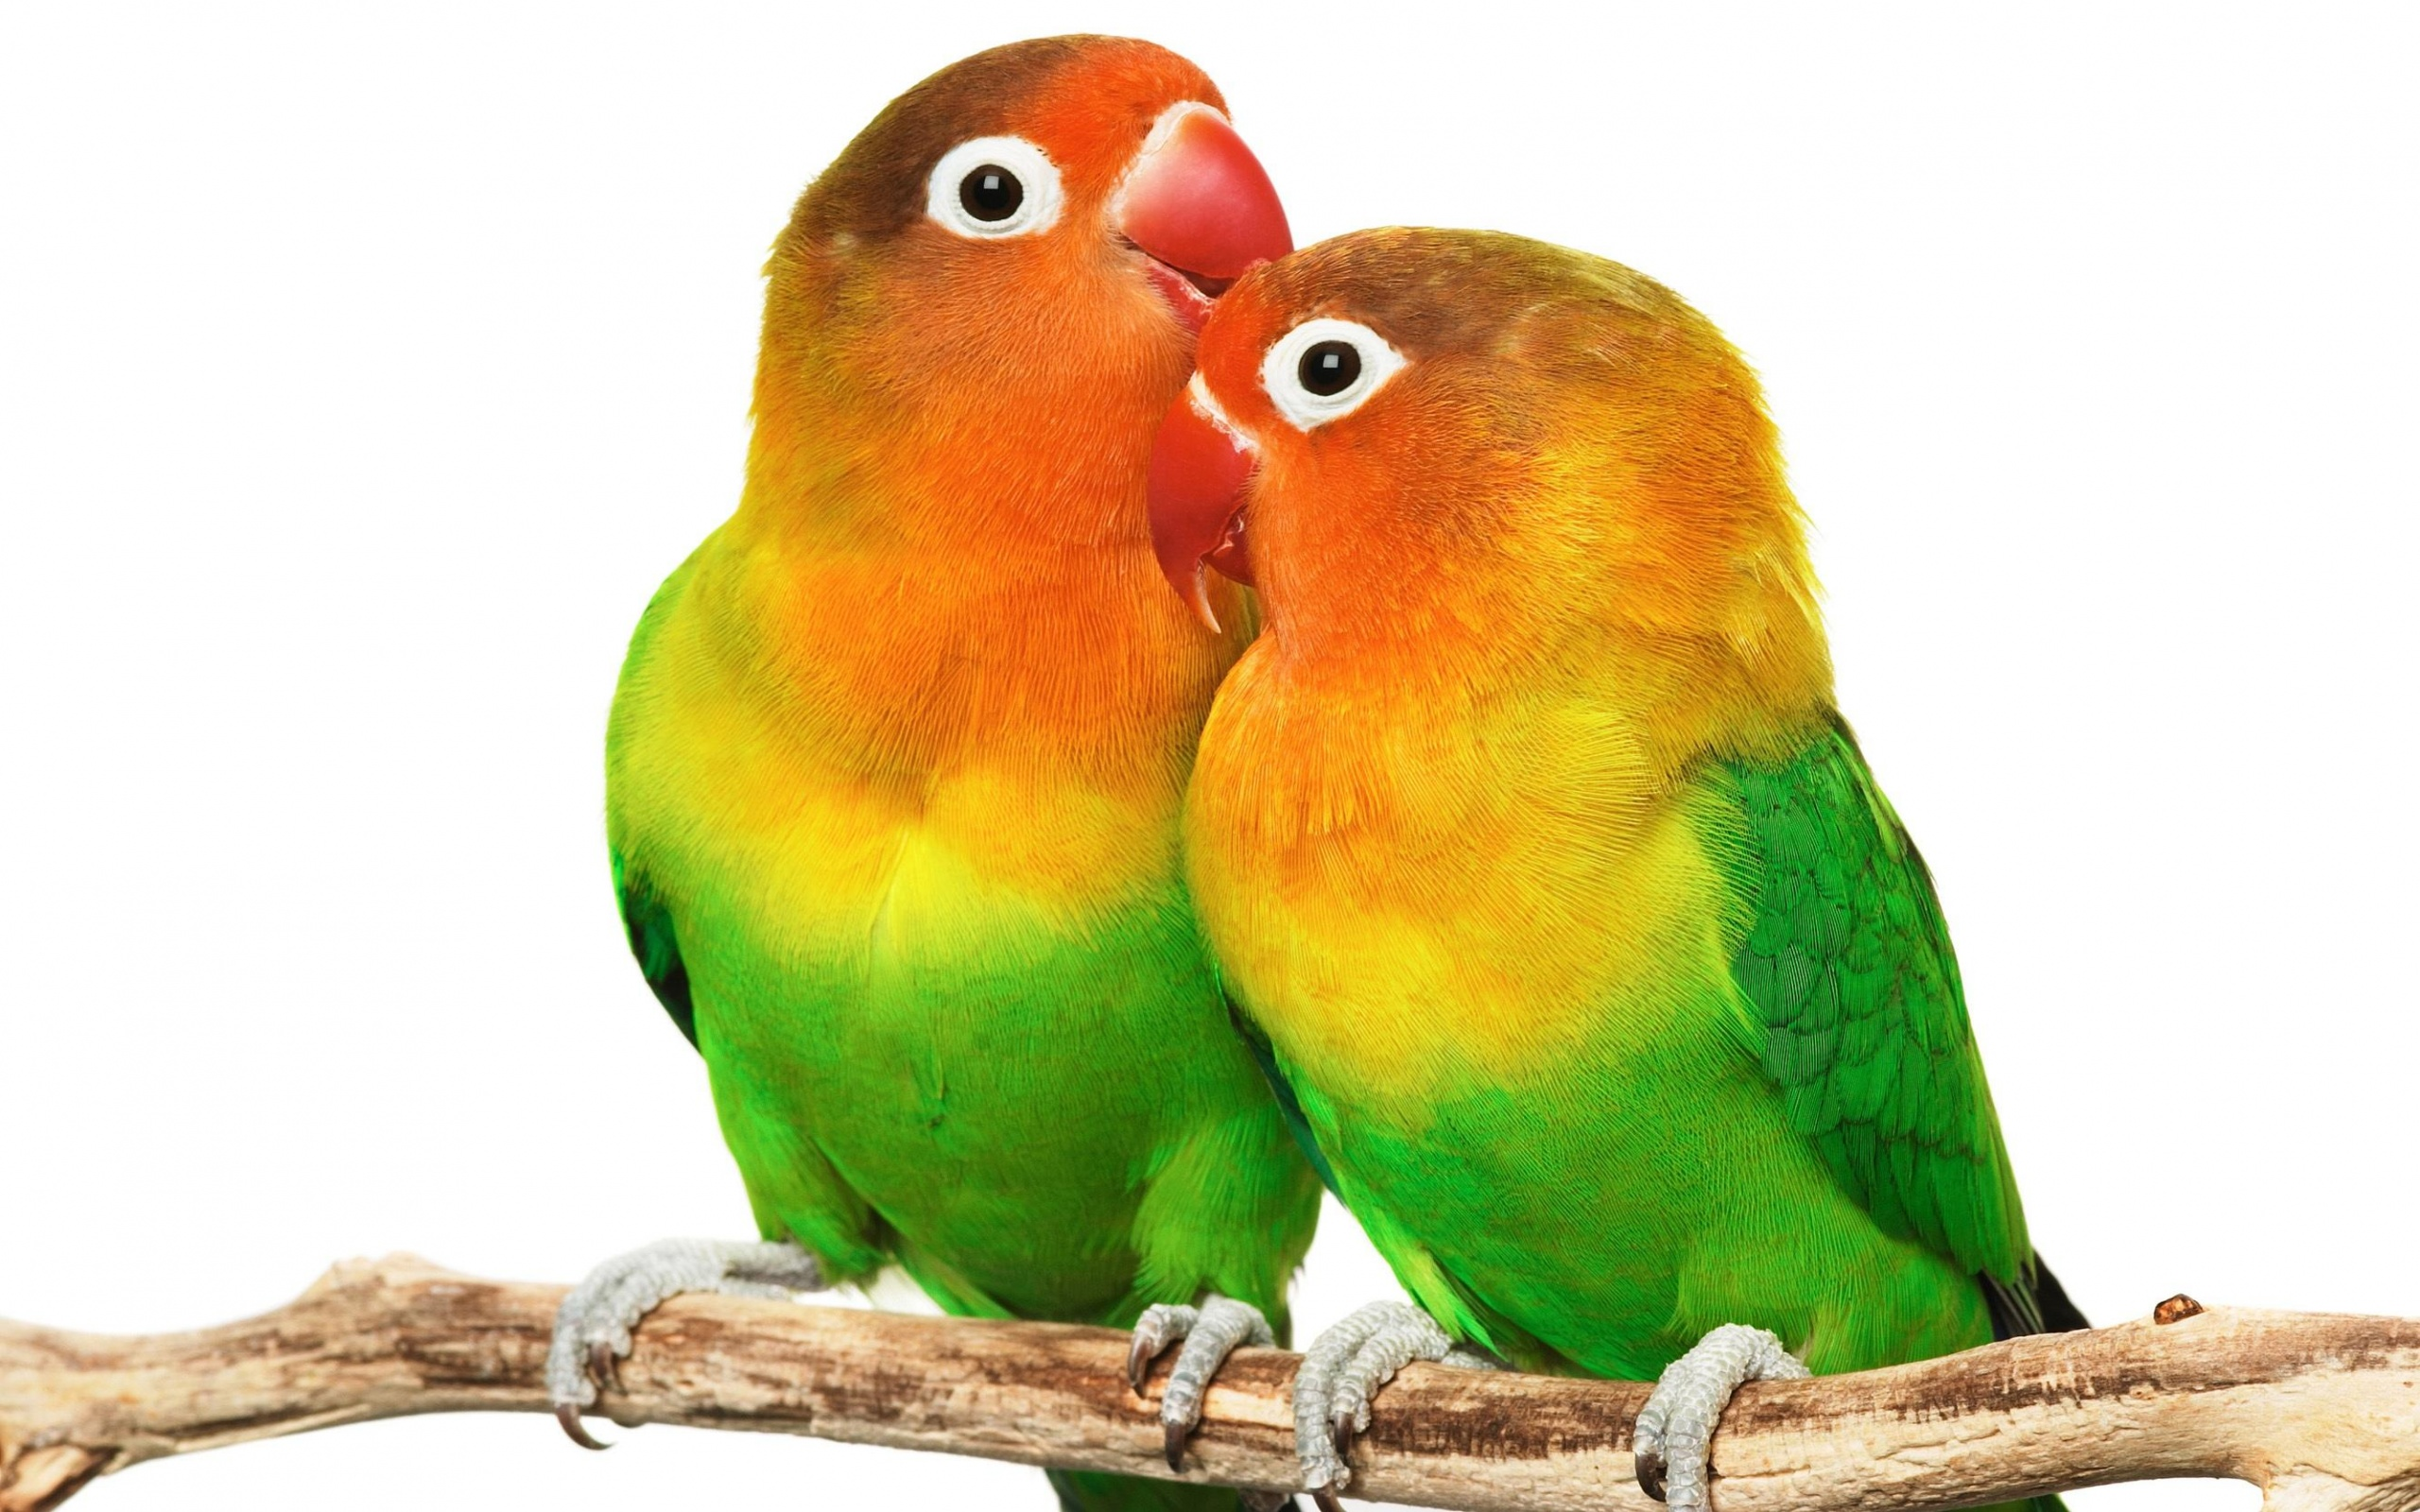 Love Birds Hd Wallpapers And Images Free Download: Backgrounds - Wallpaper Abyss